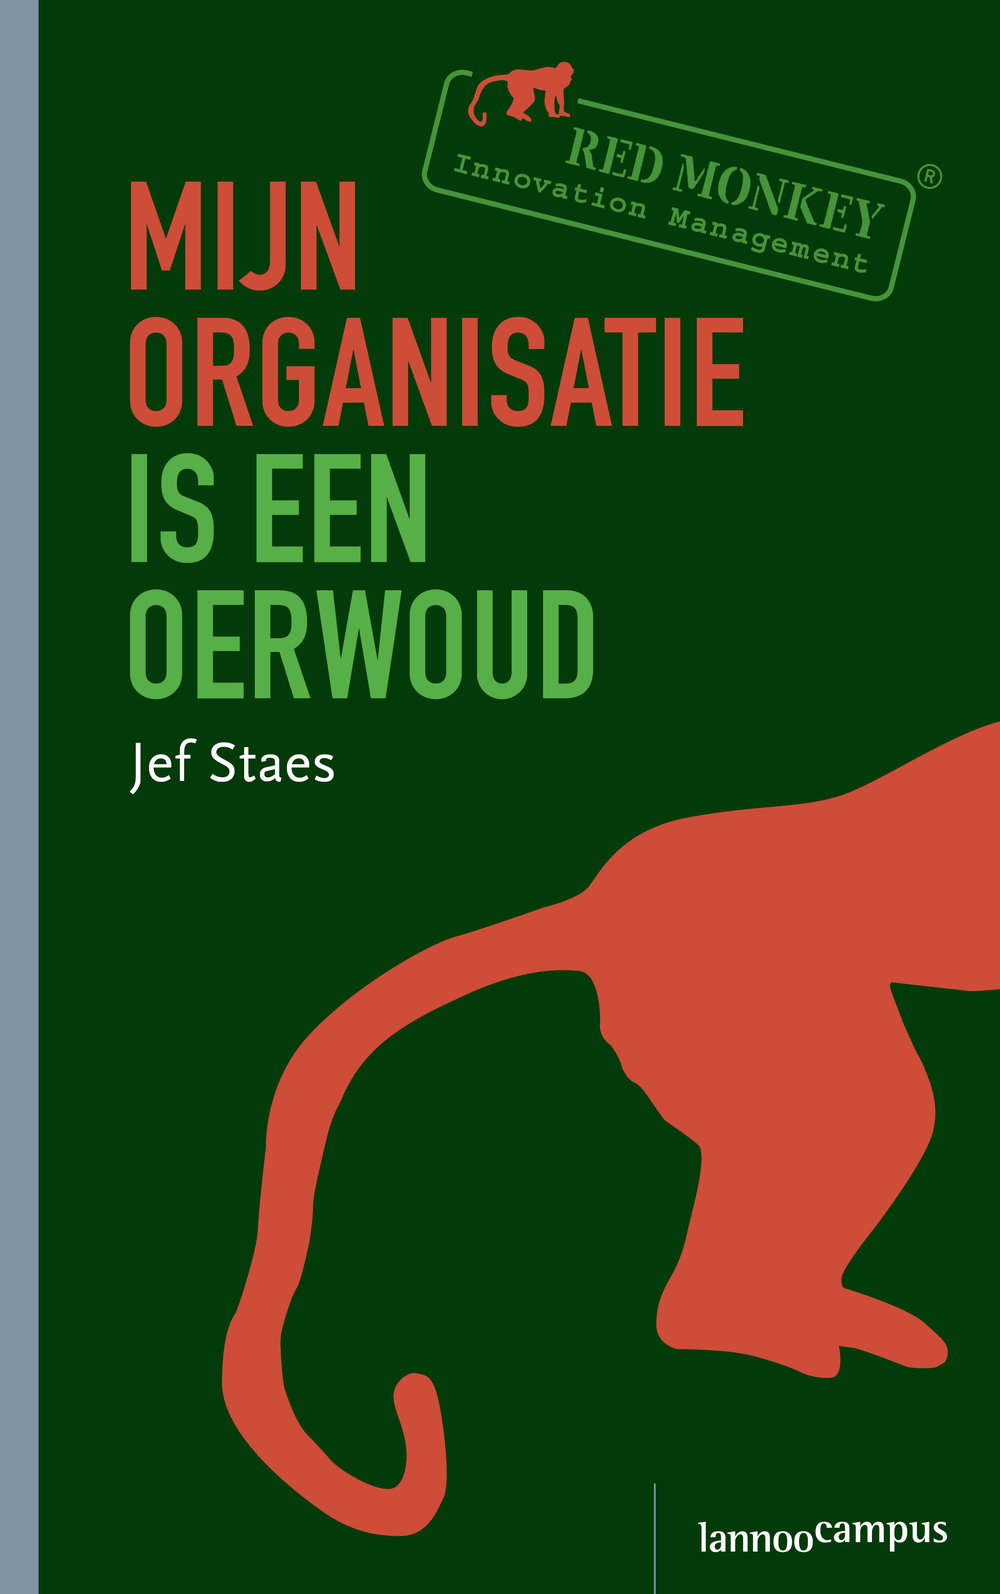 Cover Mijn organisatie is een oerwoud_high resolution.jpg